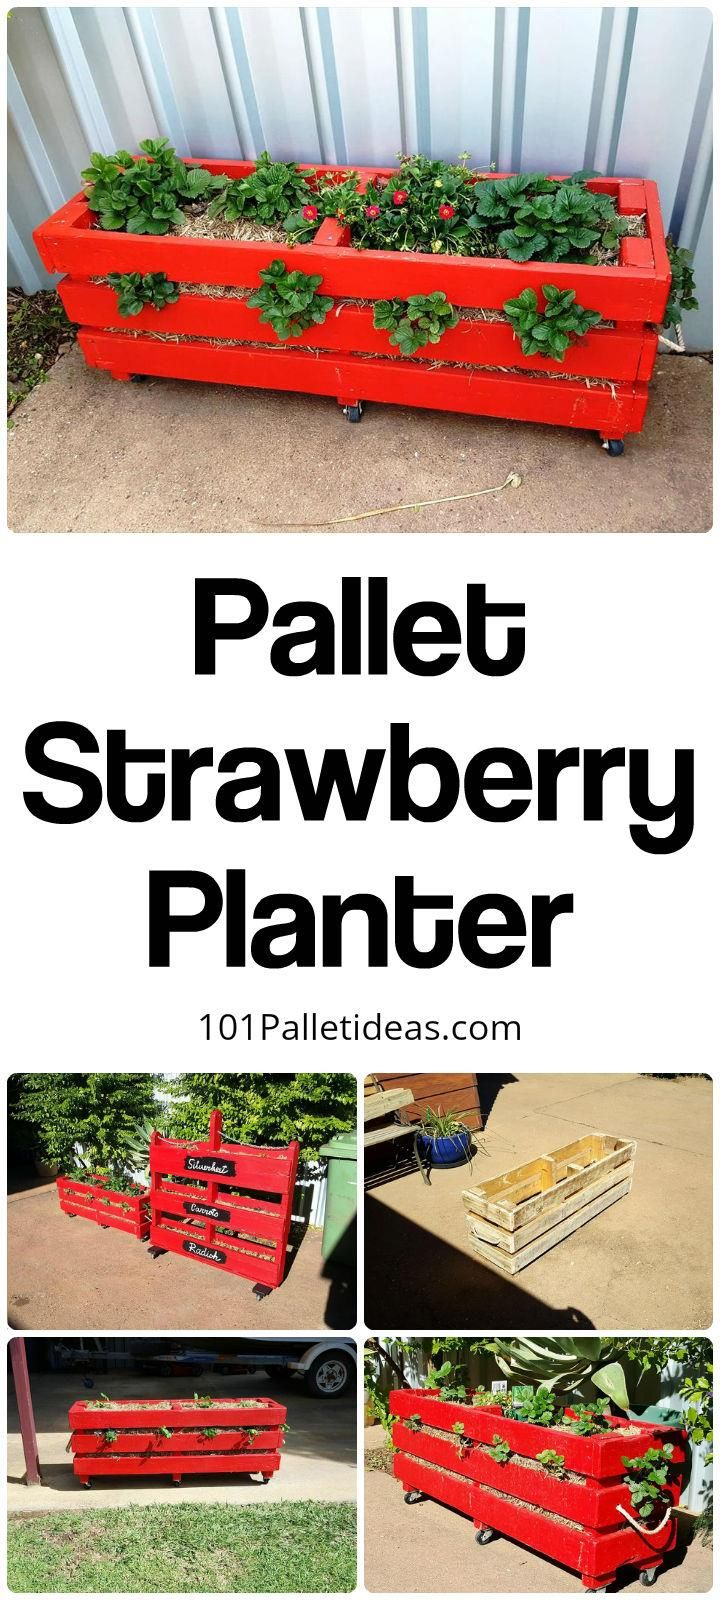 Pallet Strawberry Planter , Vertical and box planter - 101 Pallet Ideas